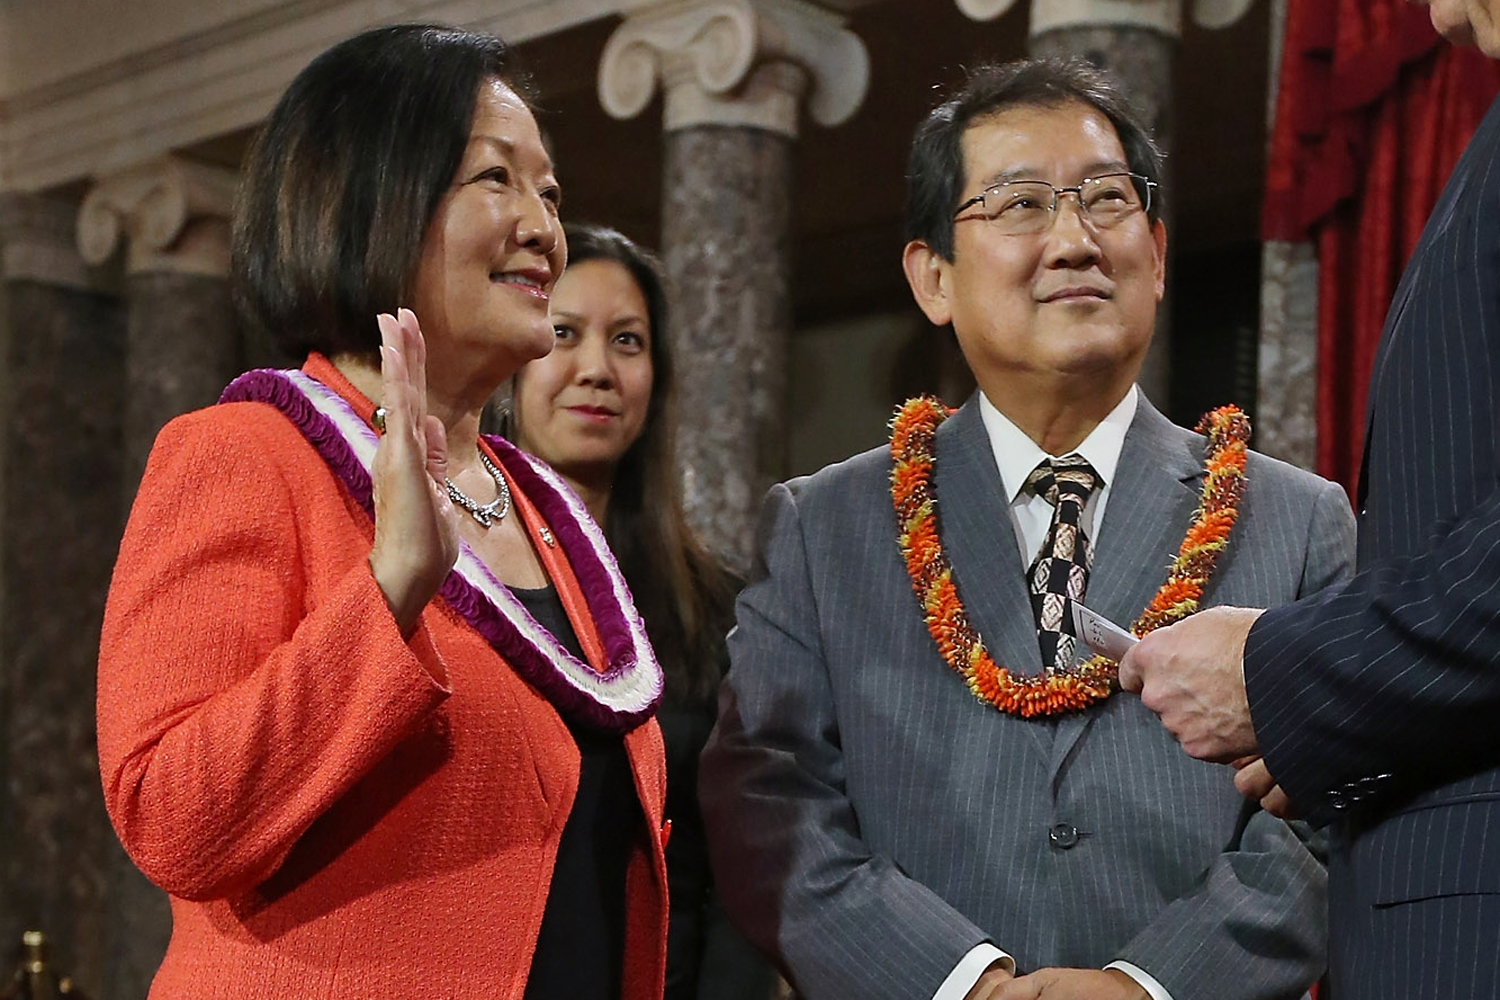 Mazie Hirono participates in a reenacted swearing-in with her husband Leighton Kim Oshima